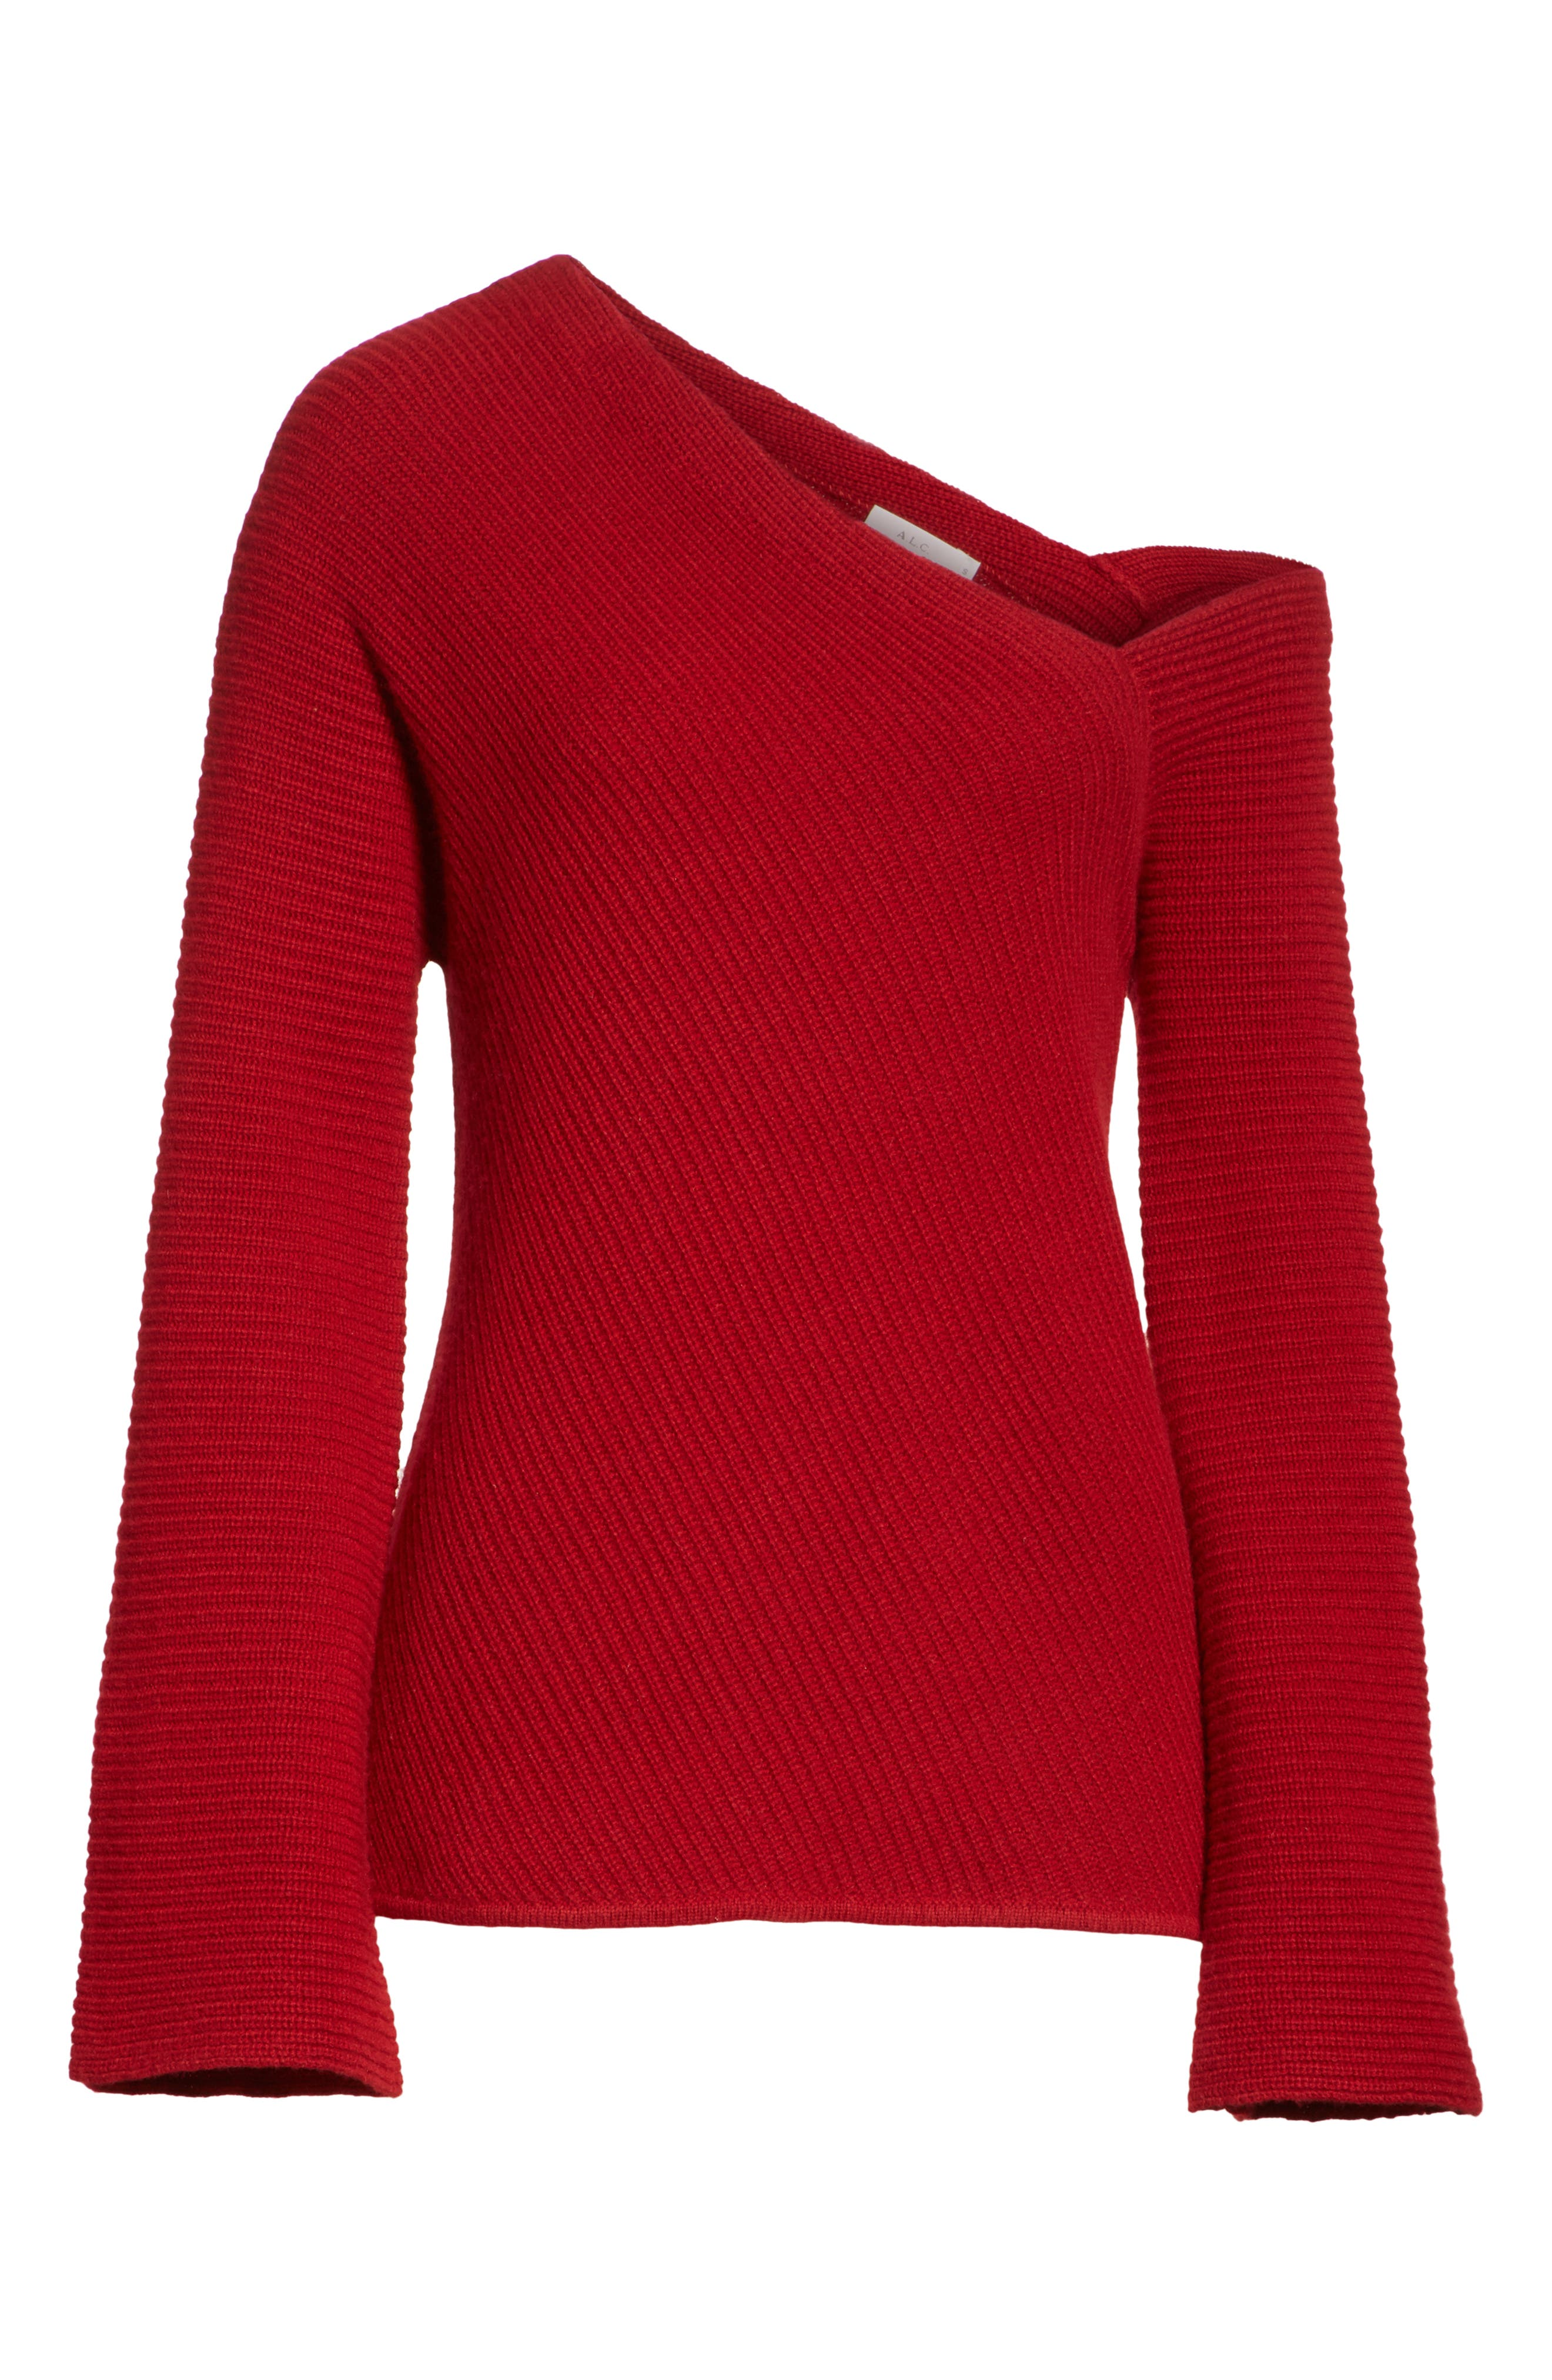 Charly Wool & Cashmere One-Shoulder Sweater,                             Alternate thumbnail 6, color,                             RED